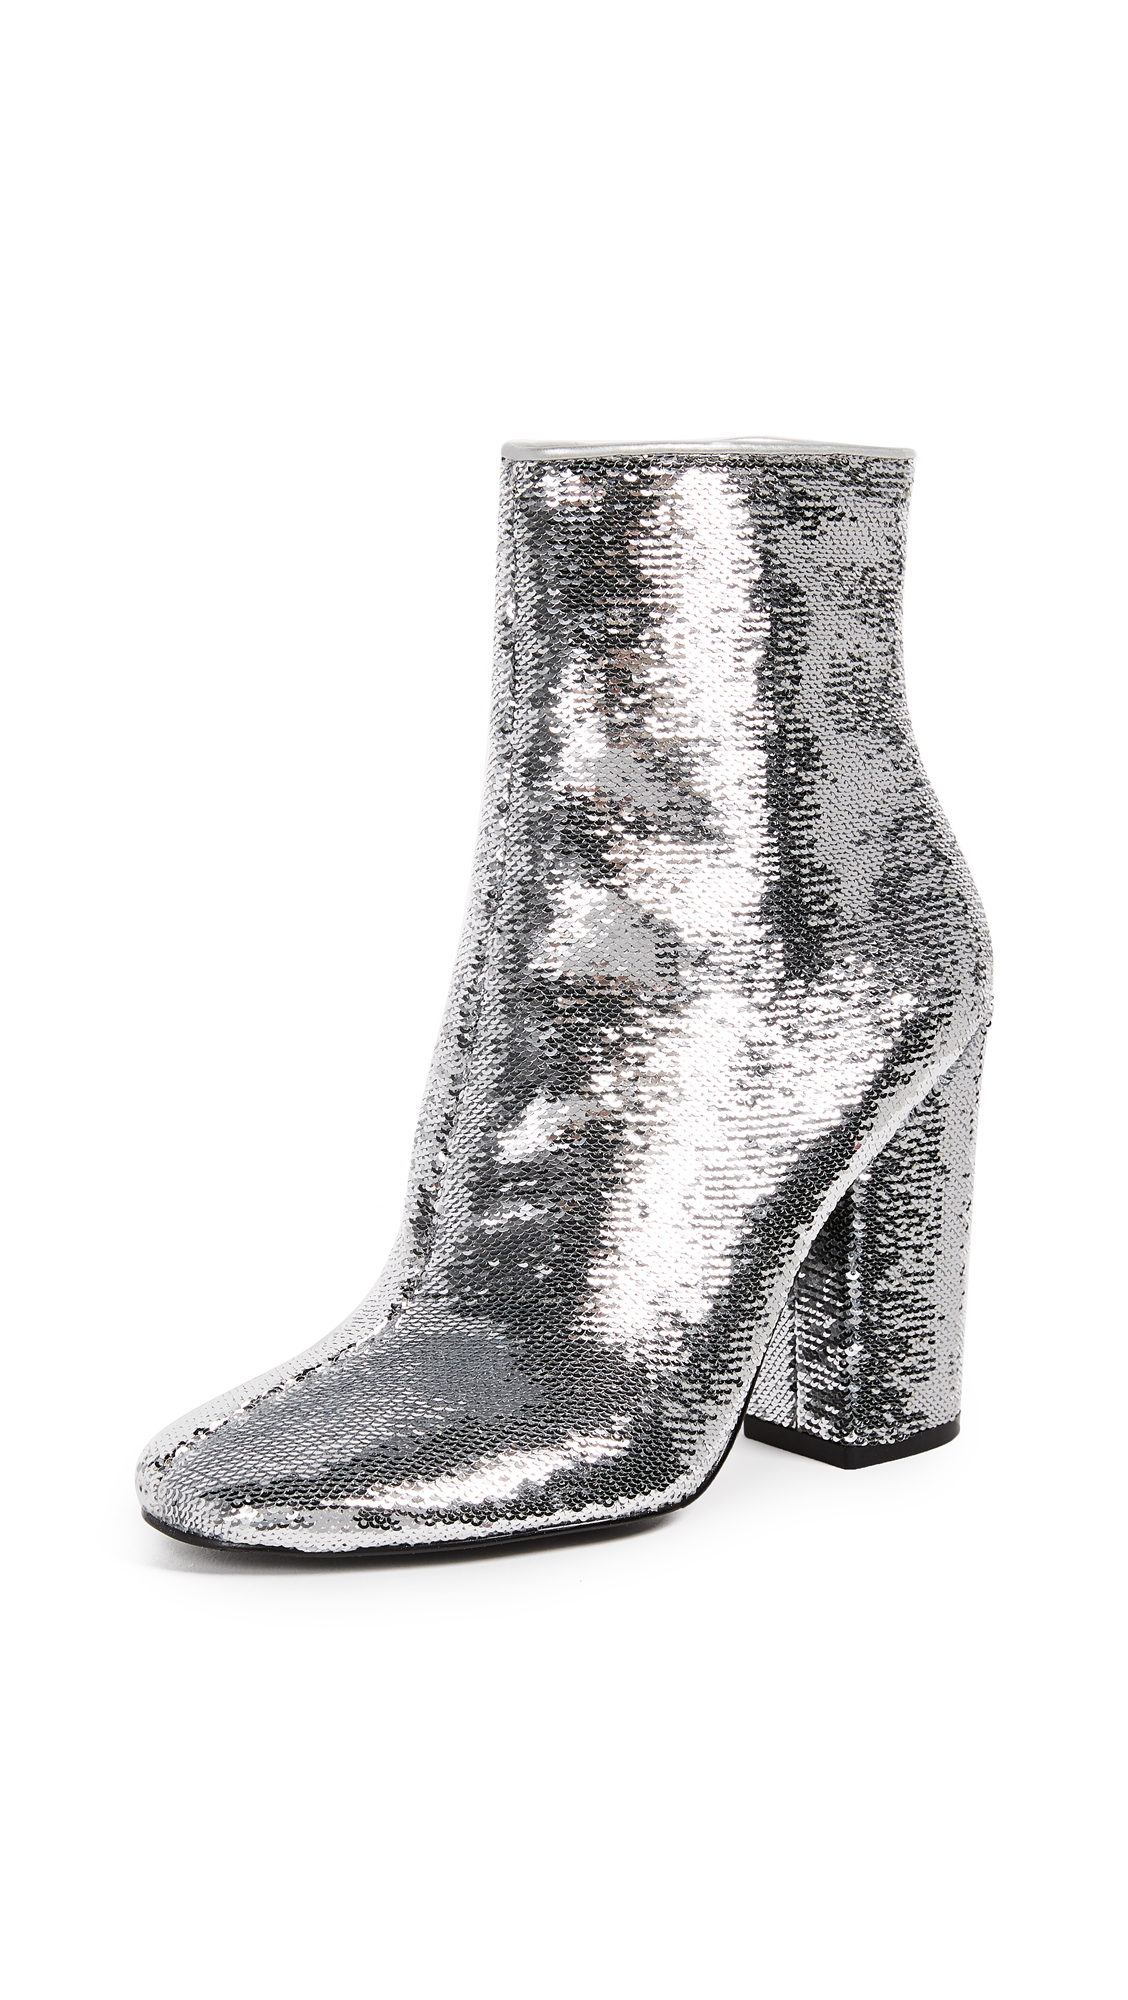 KENDALL + KYLIE Haedyn Block Heel Ankle Boots - Silver